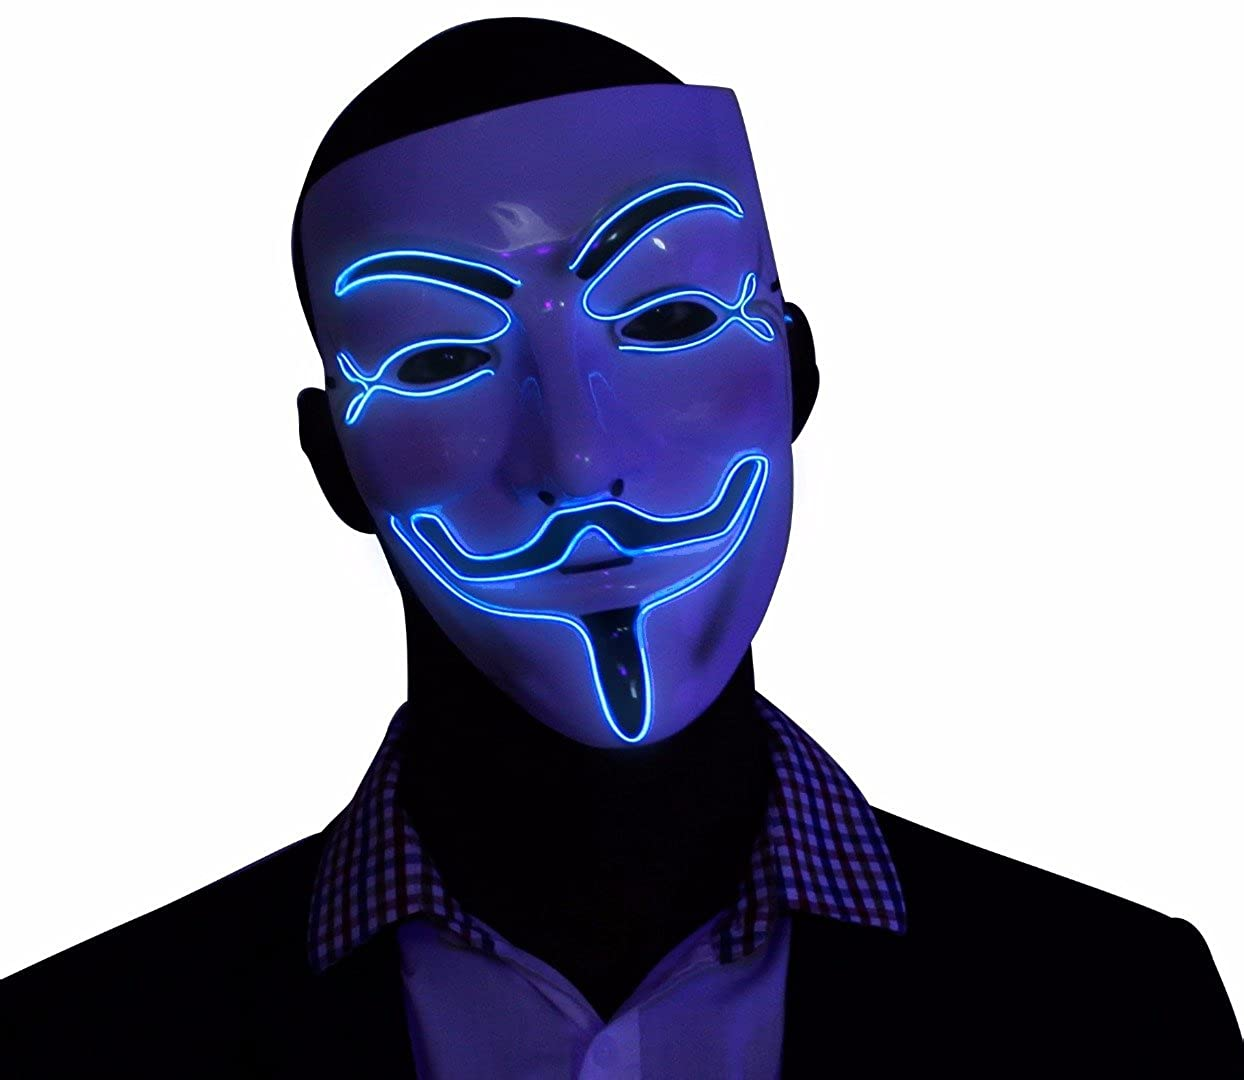 Light Up V for Vendetta Mask, Glow EL Wire LED Guy Fawkes Mask, Anonymous Mask for Rave